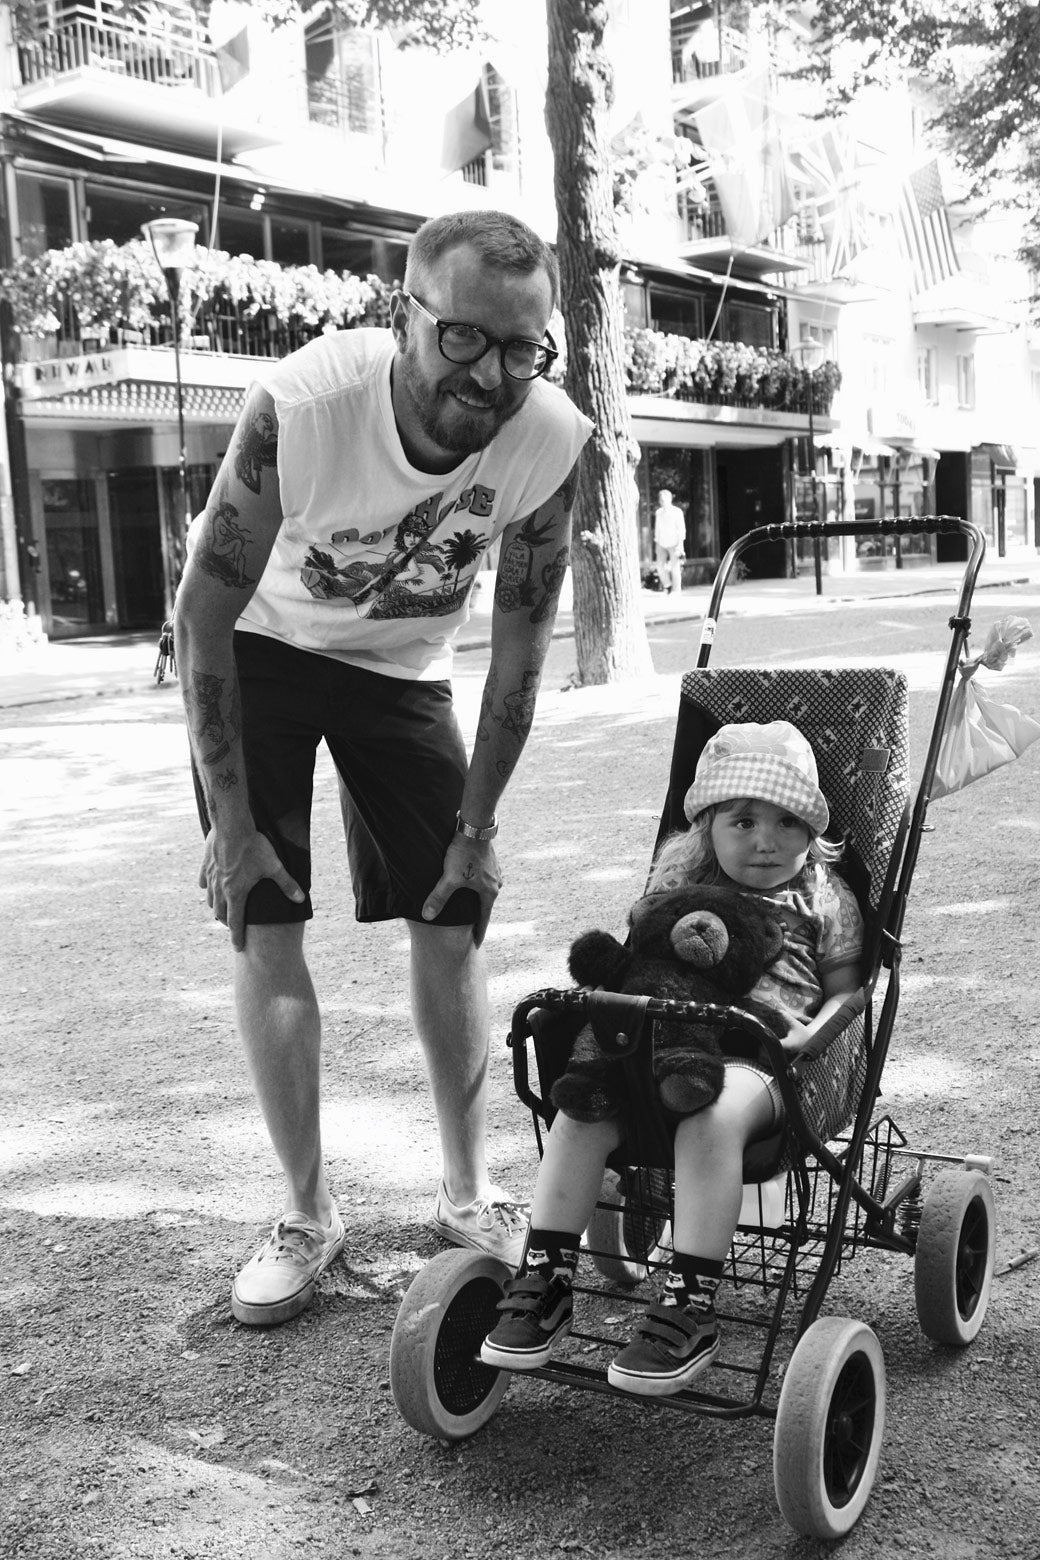 Stockholm is teeming with parks, playgrounds, and other green spaces for families. I met this father and his daughter while they crossed through the city park Mariatorget on the island of Södermalm.